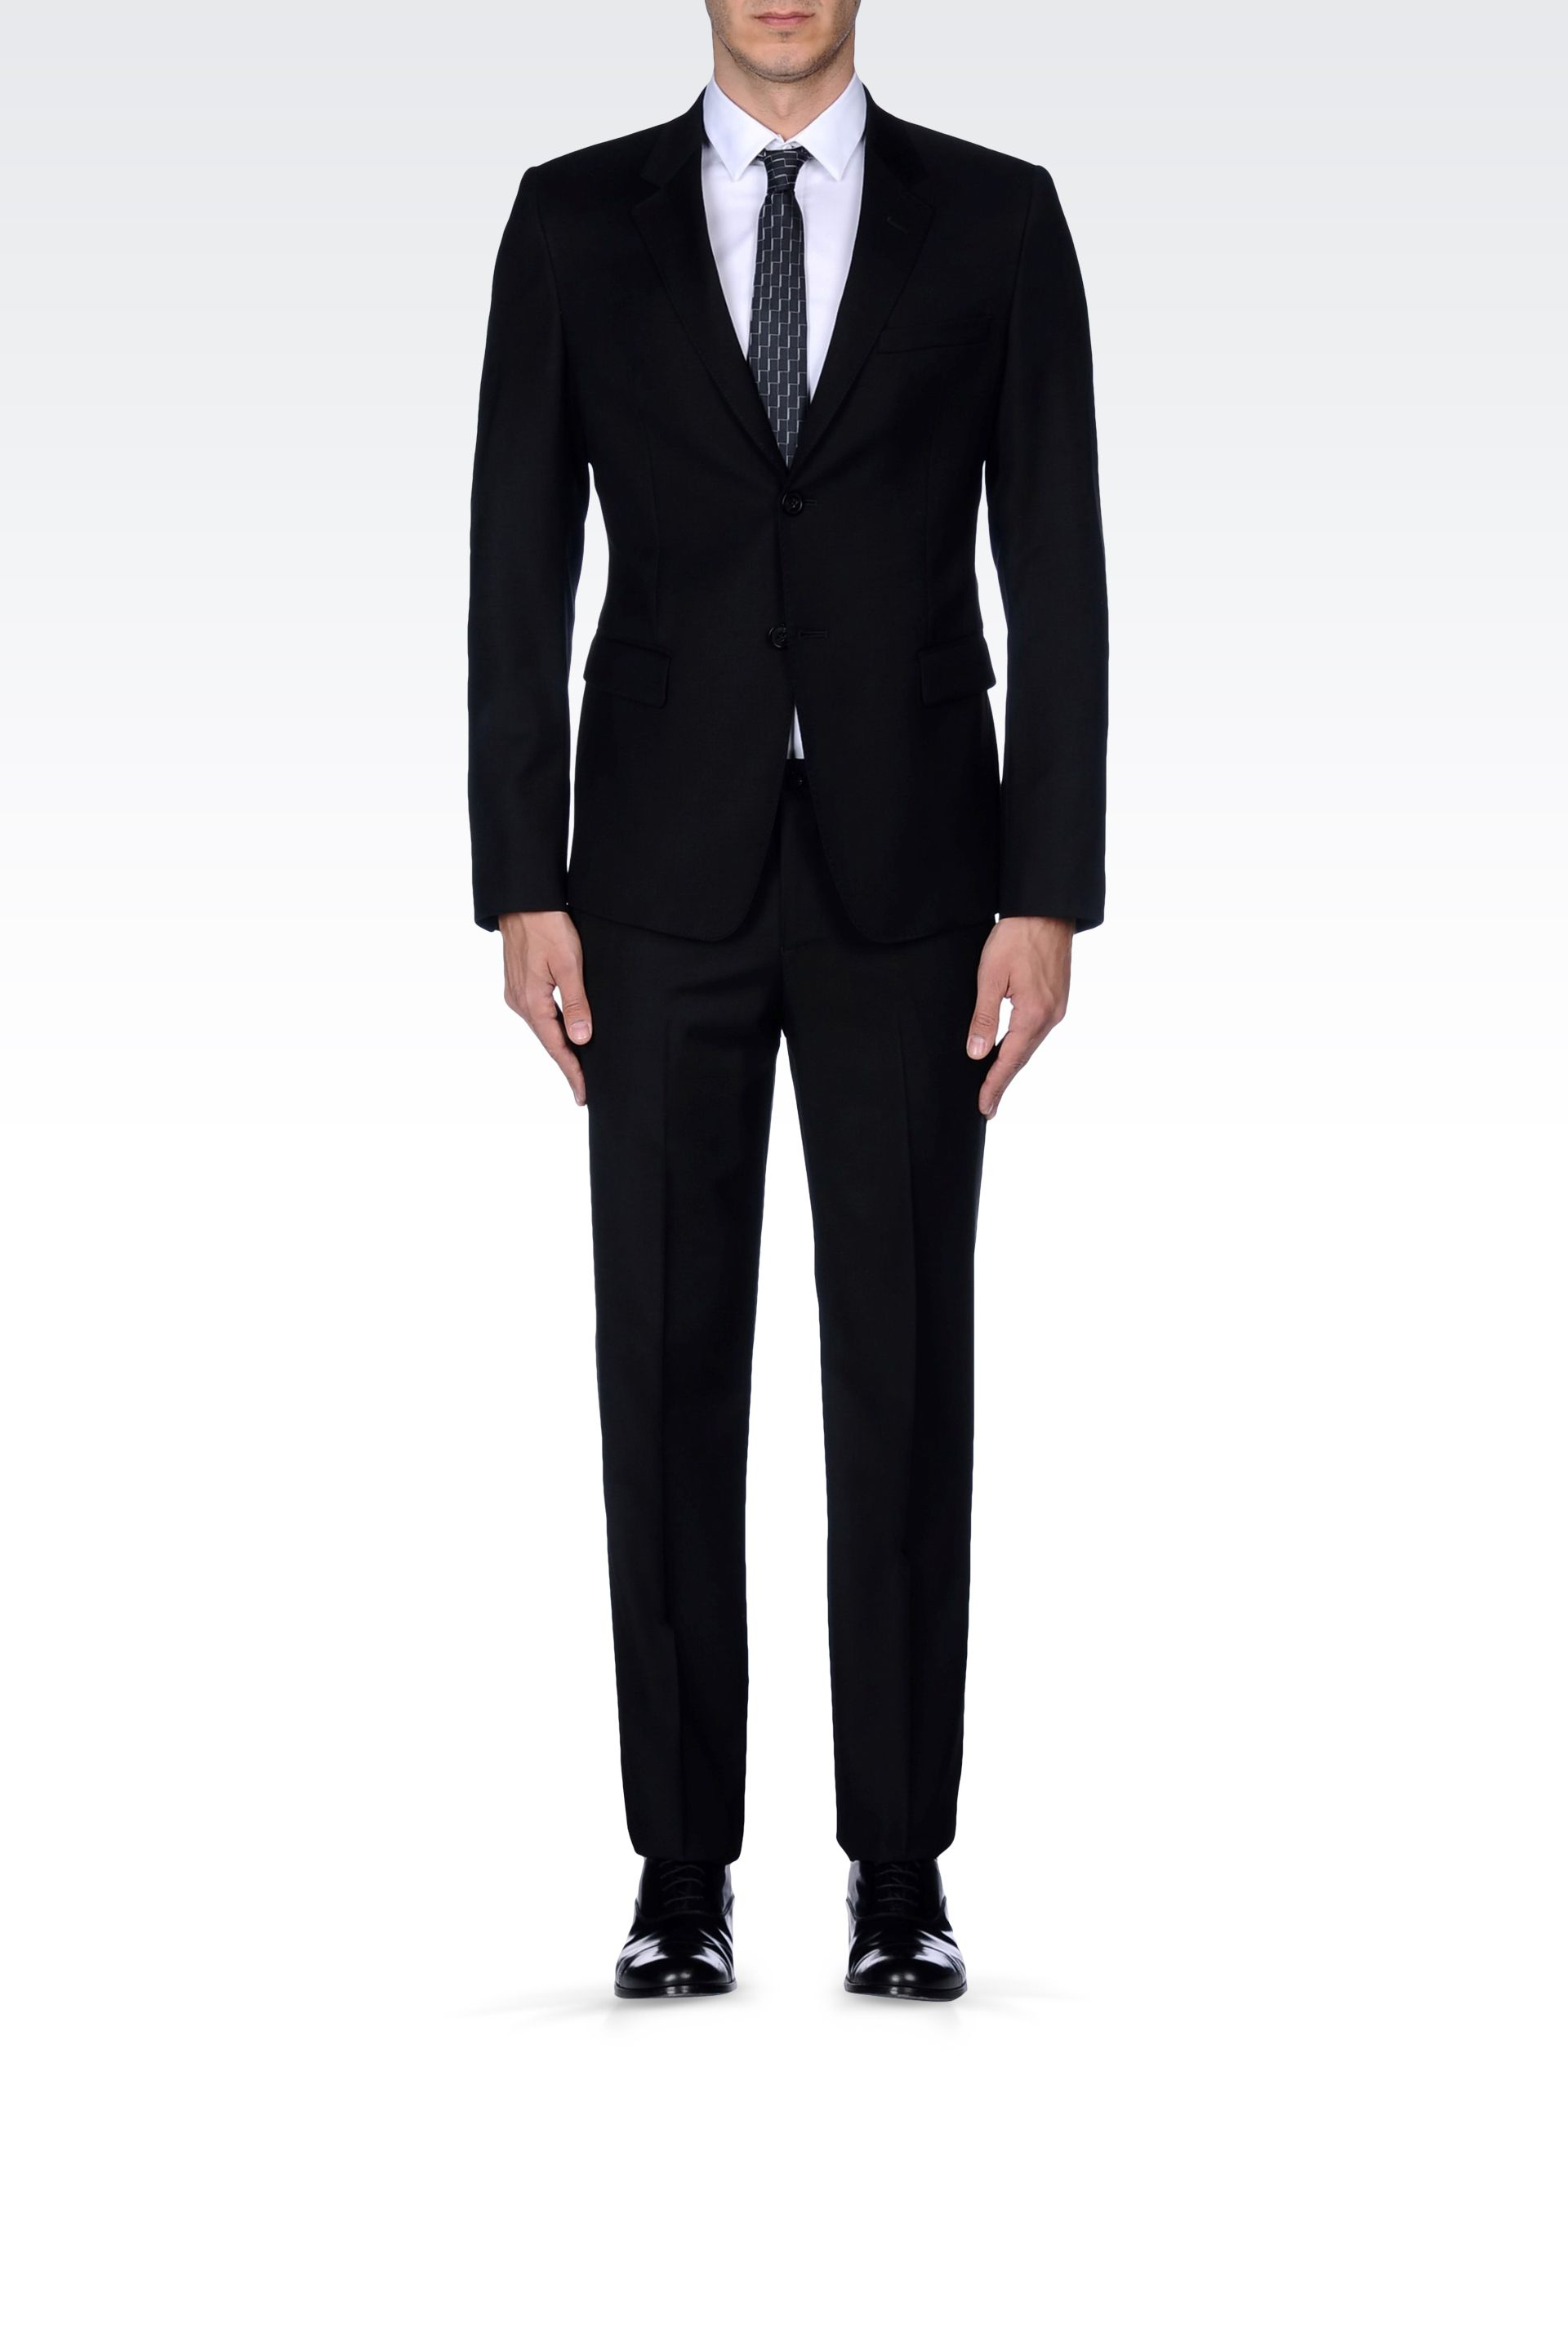 angora black single men New versace jacket this japanese vinyl jacket from versace features a notched lapel, full-length sleeves, flap front pockets, and a panel seamed back with single vent new versace black angora cashmere wool men's coat.